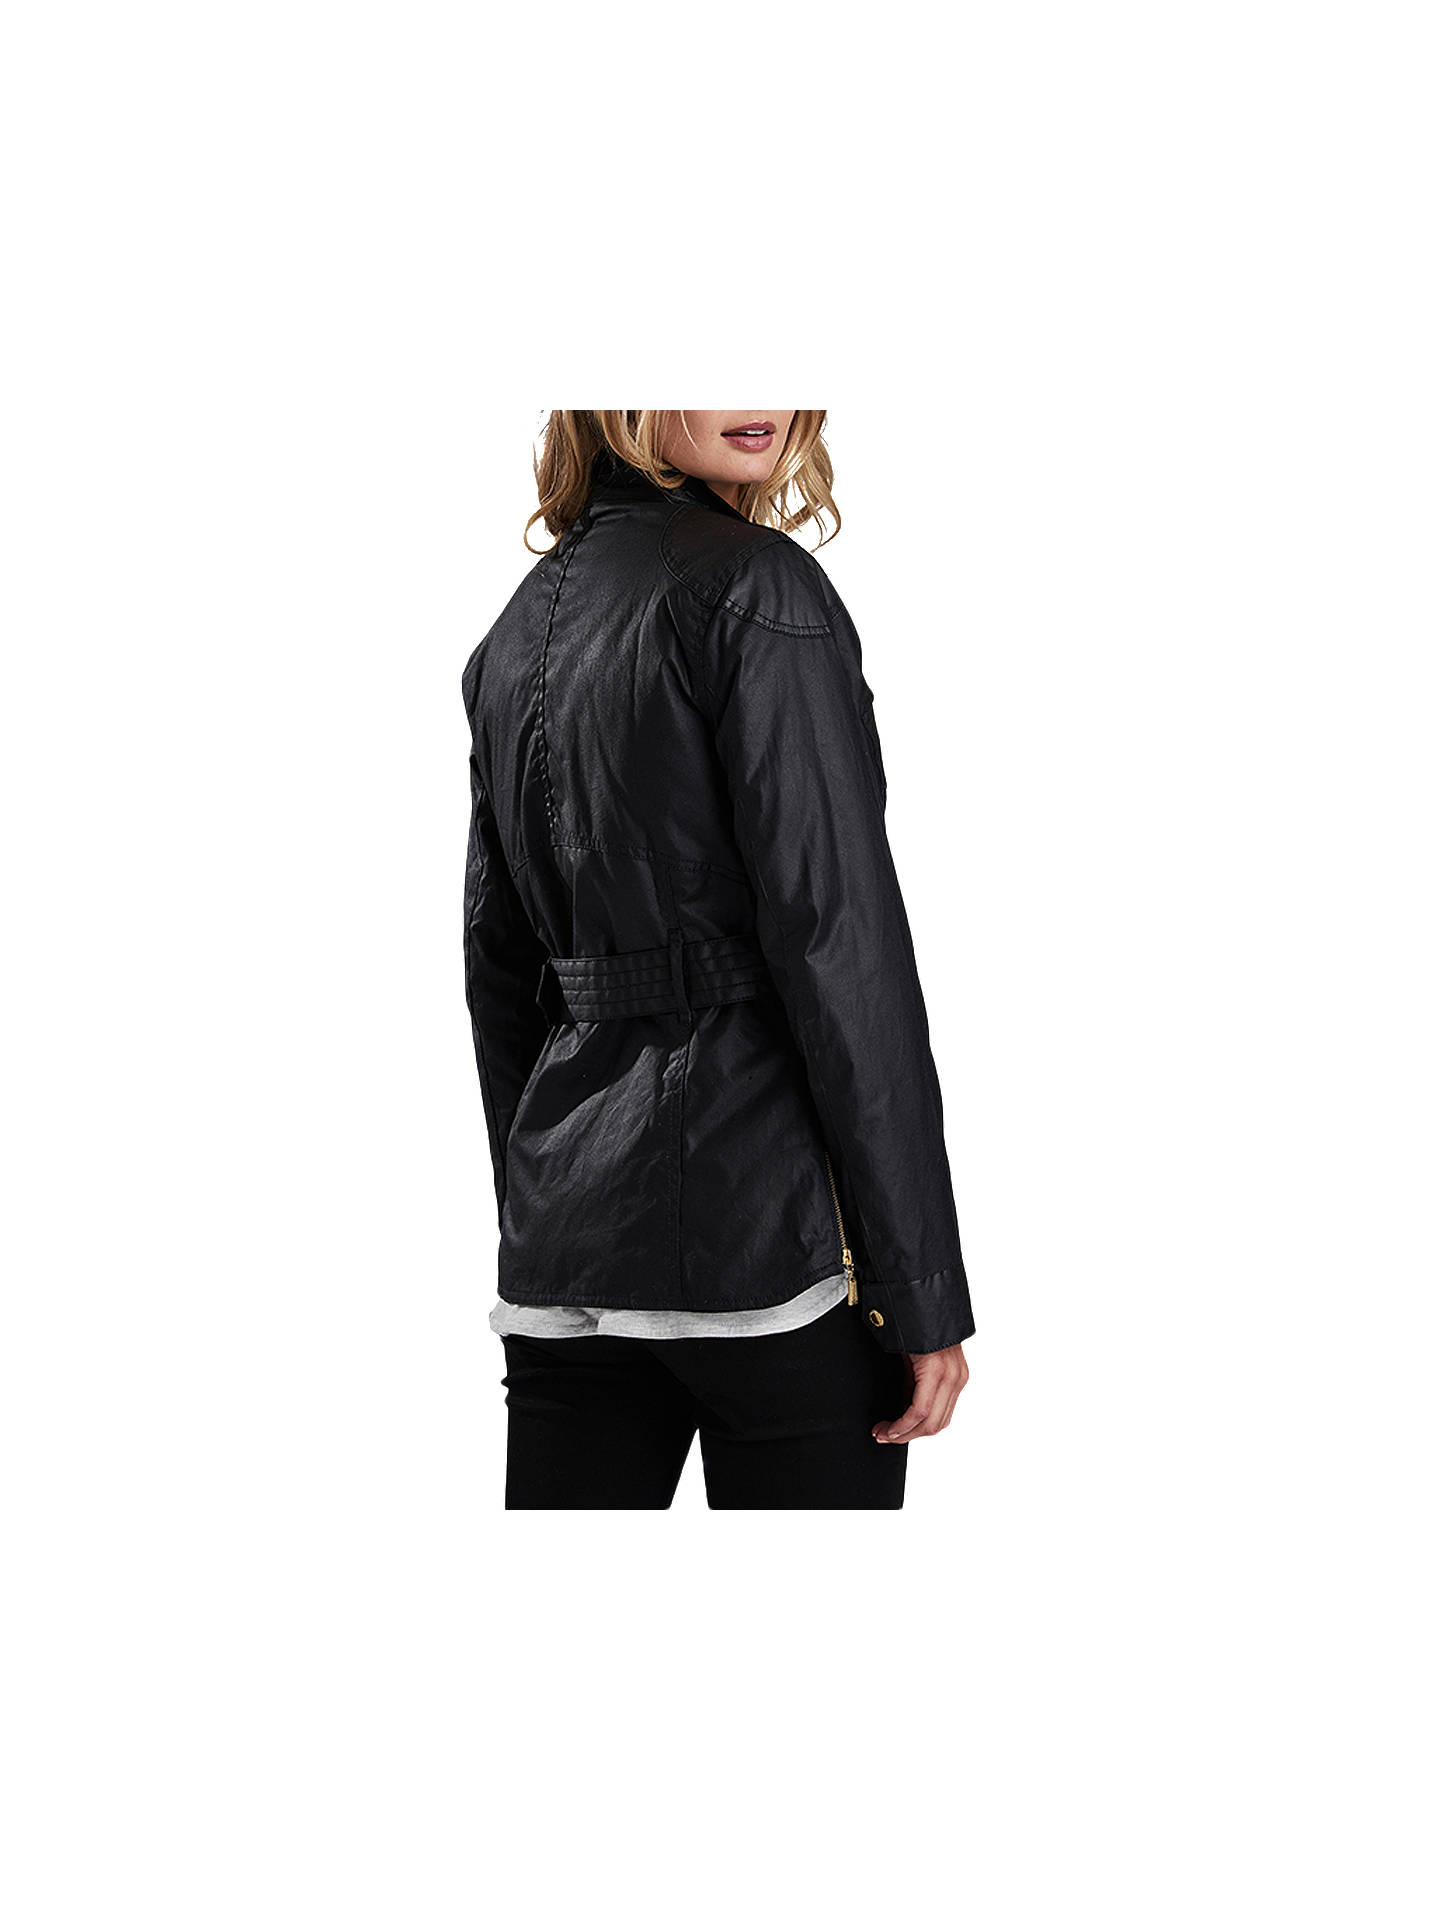 BuyBarbour International Hubcap Waxed Jacket, Black, 8 Online at johnlewis.com